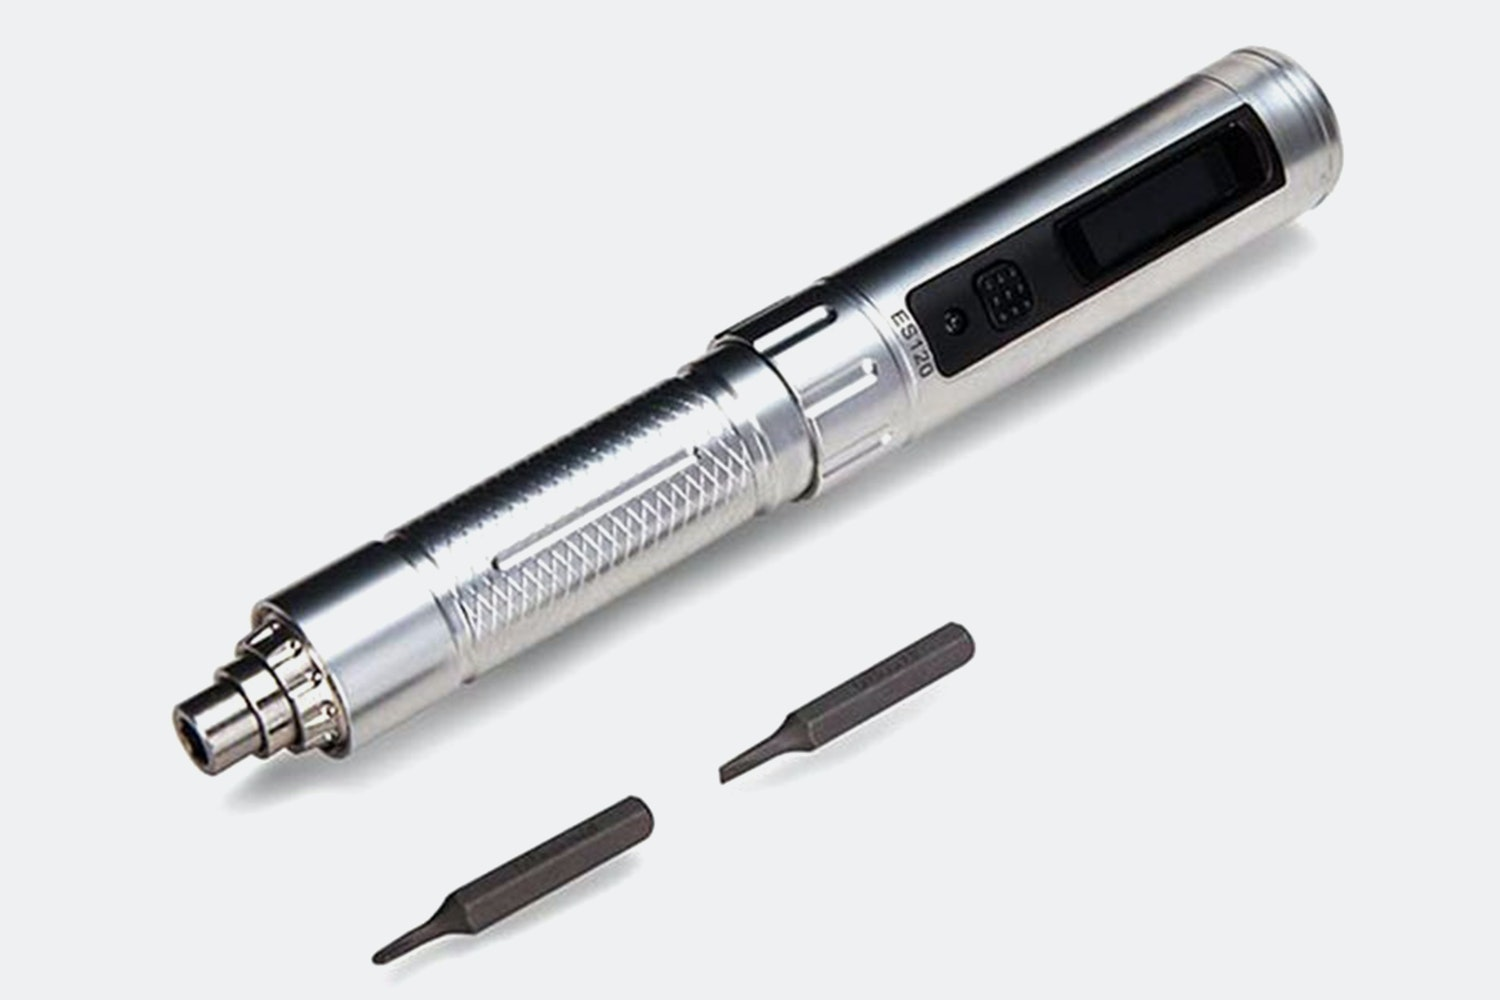 SainSmart Rechargeable Stainless Steel Screwdriver